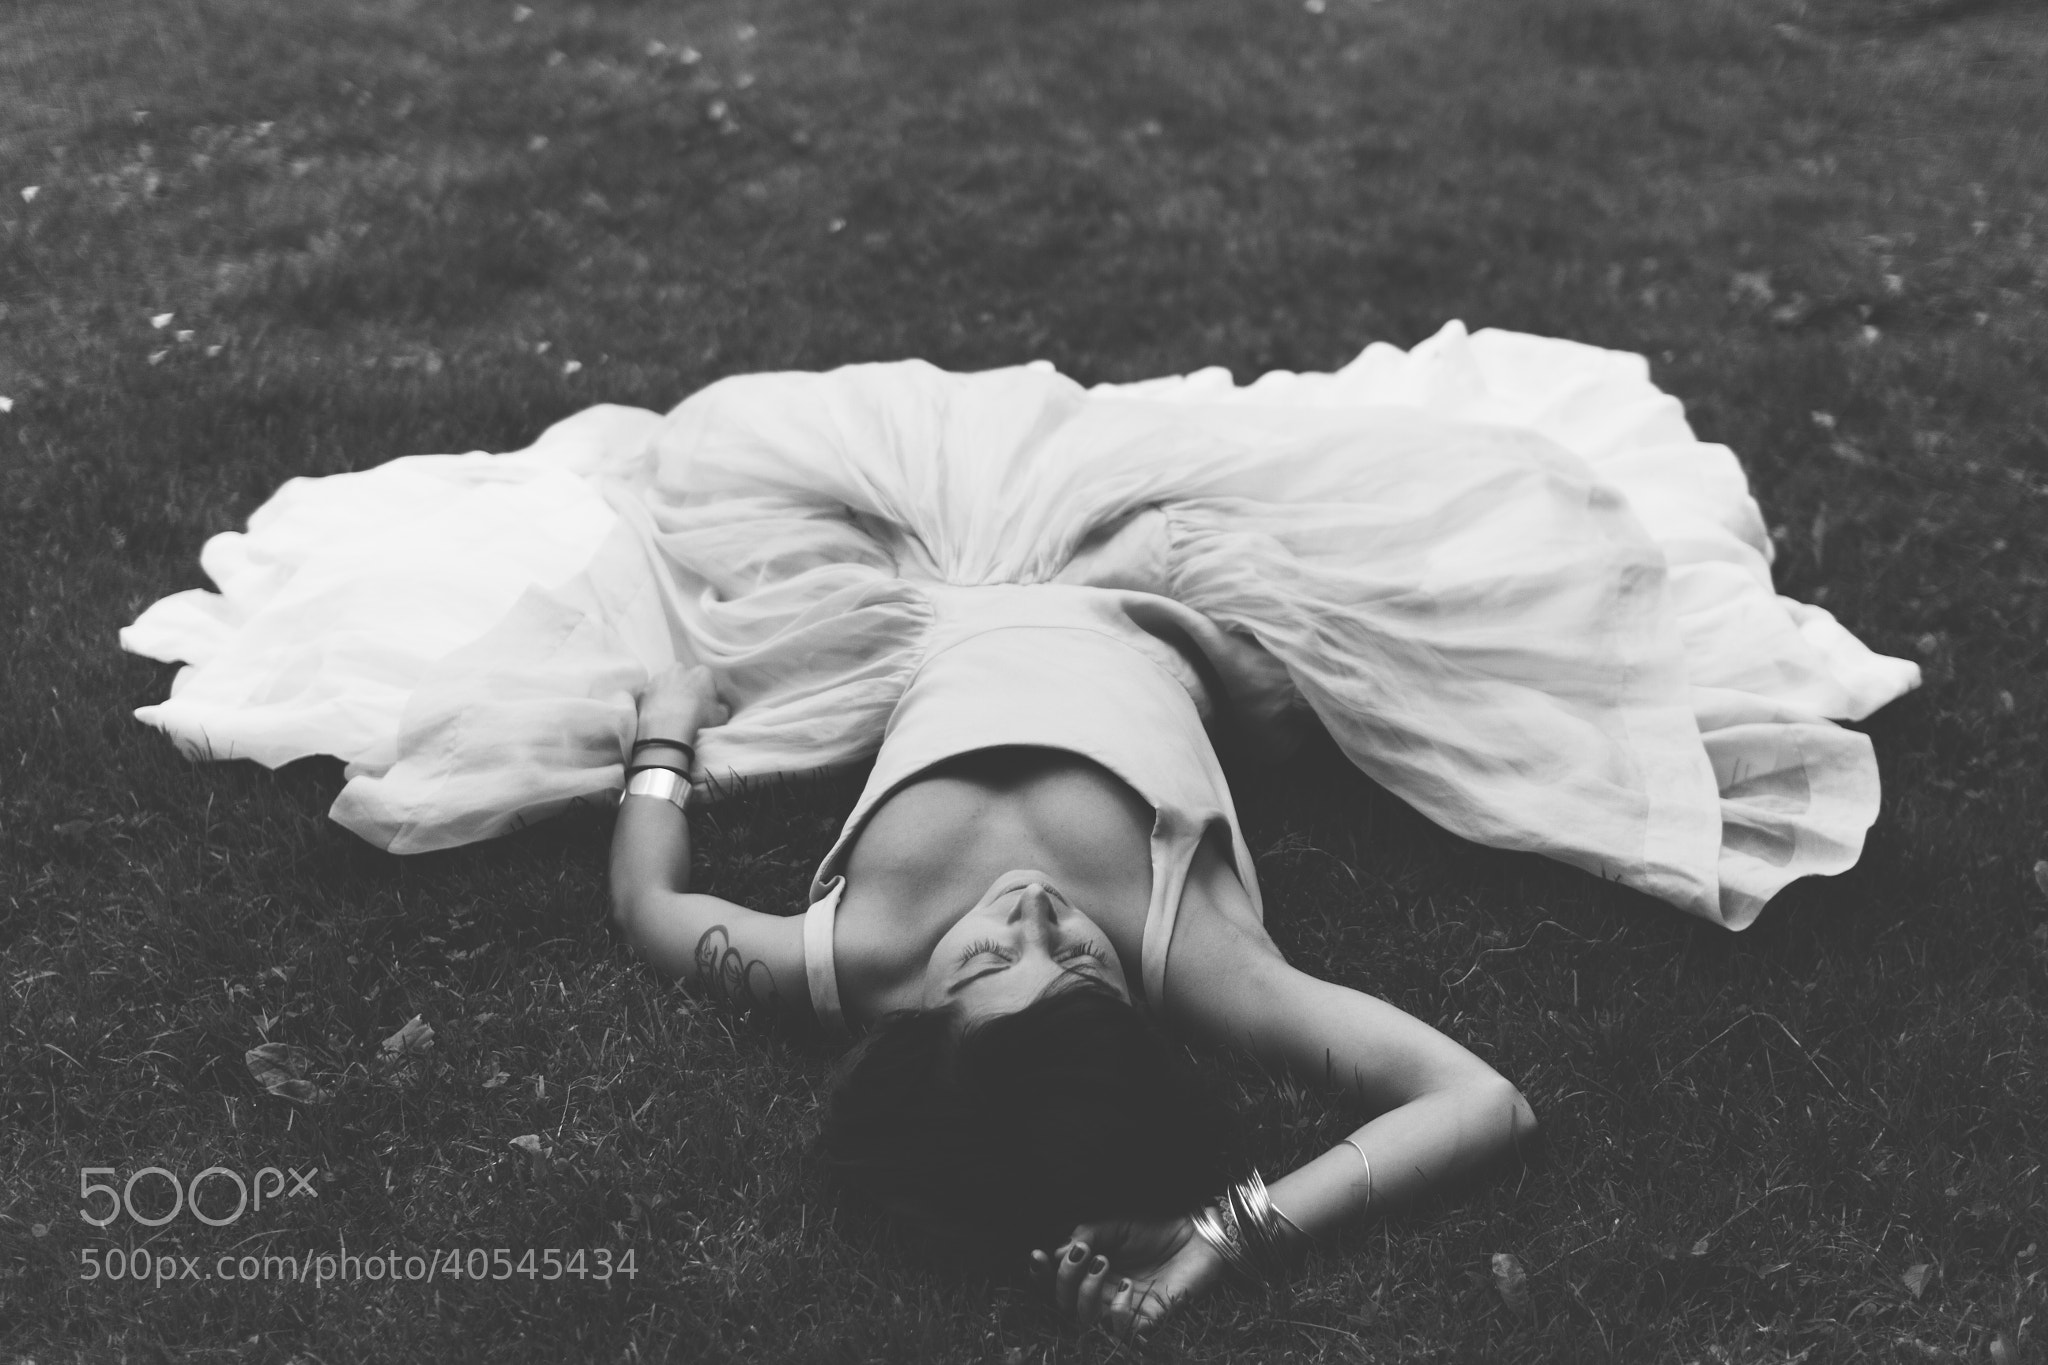 Photograph Sleeping Beauty   by Oleg Zharsky on 500px